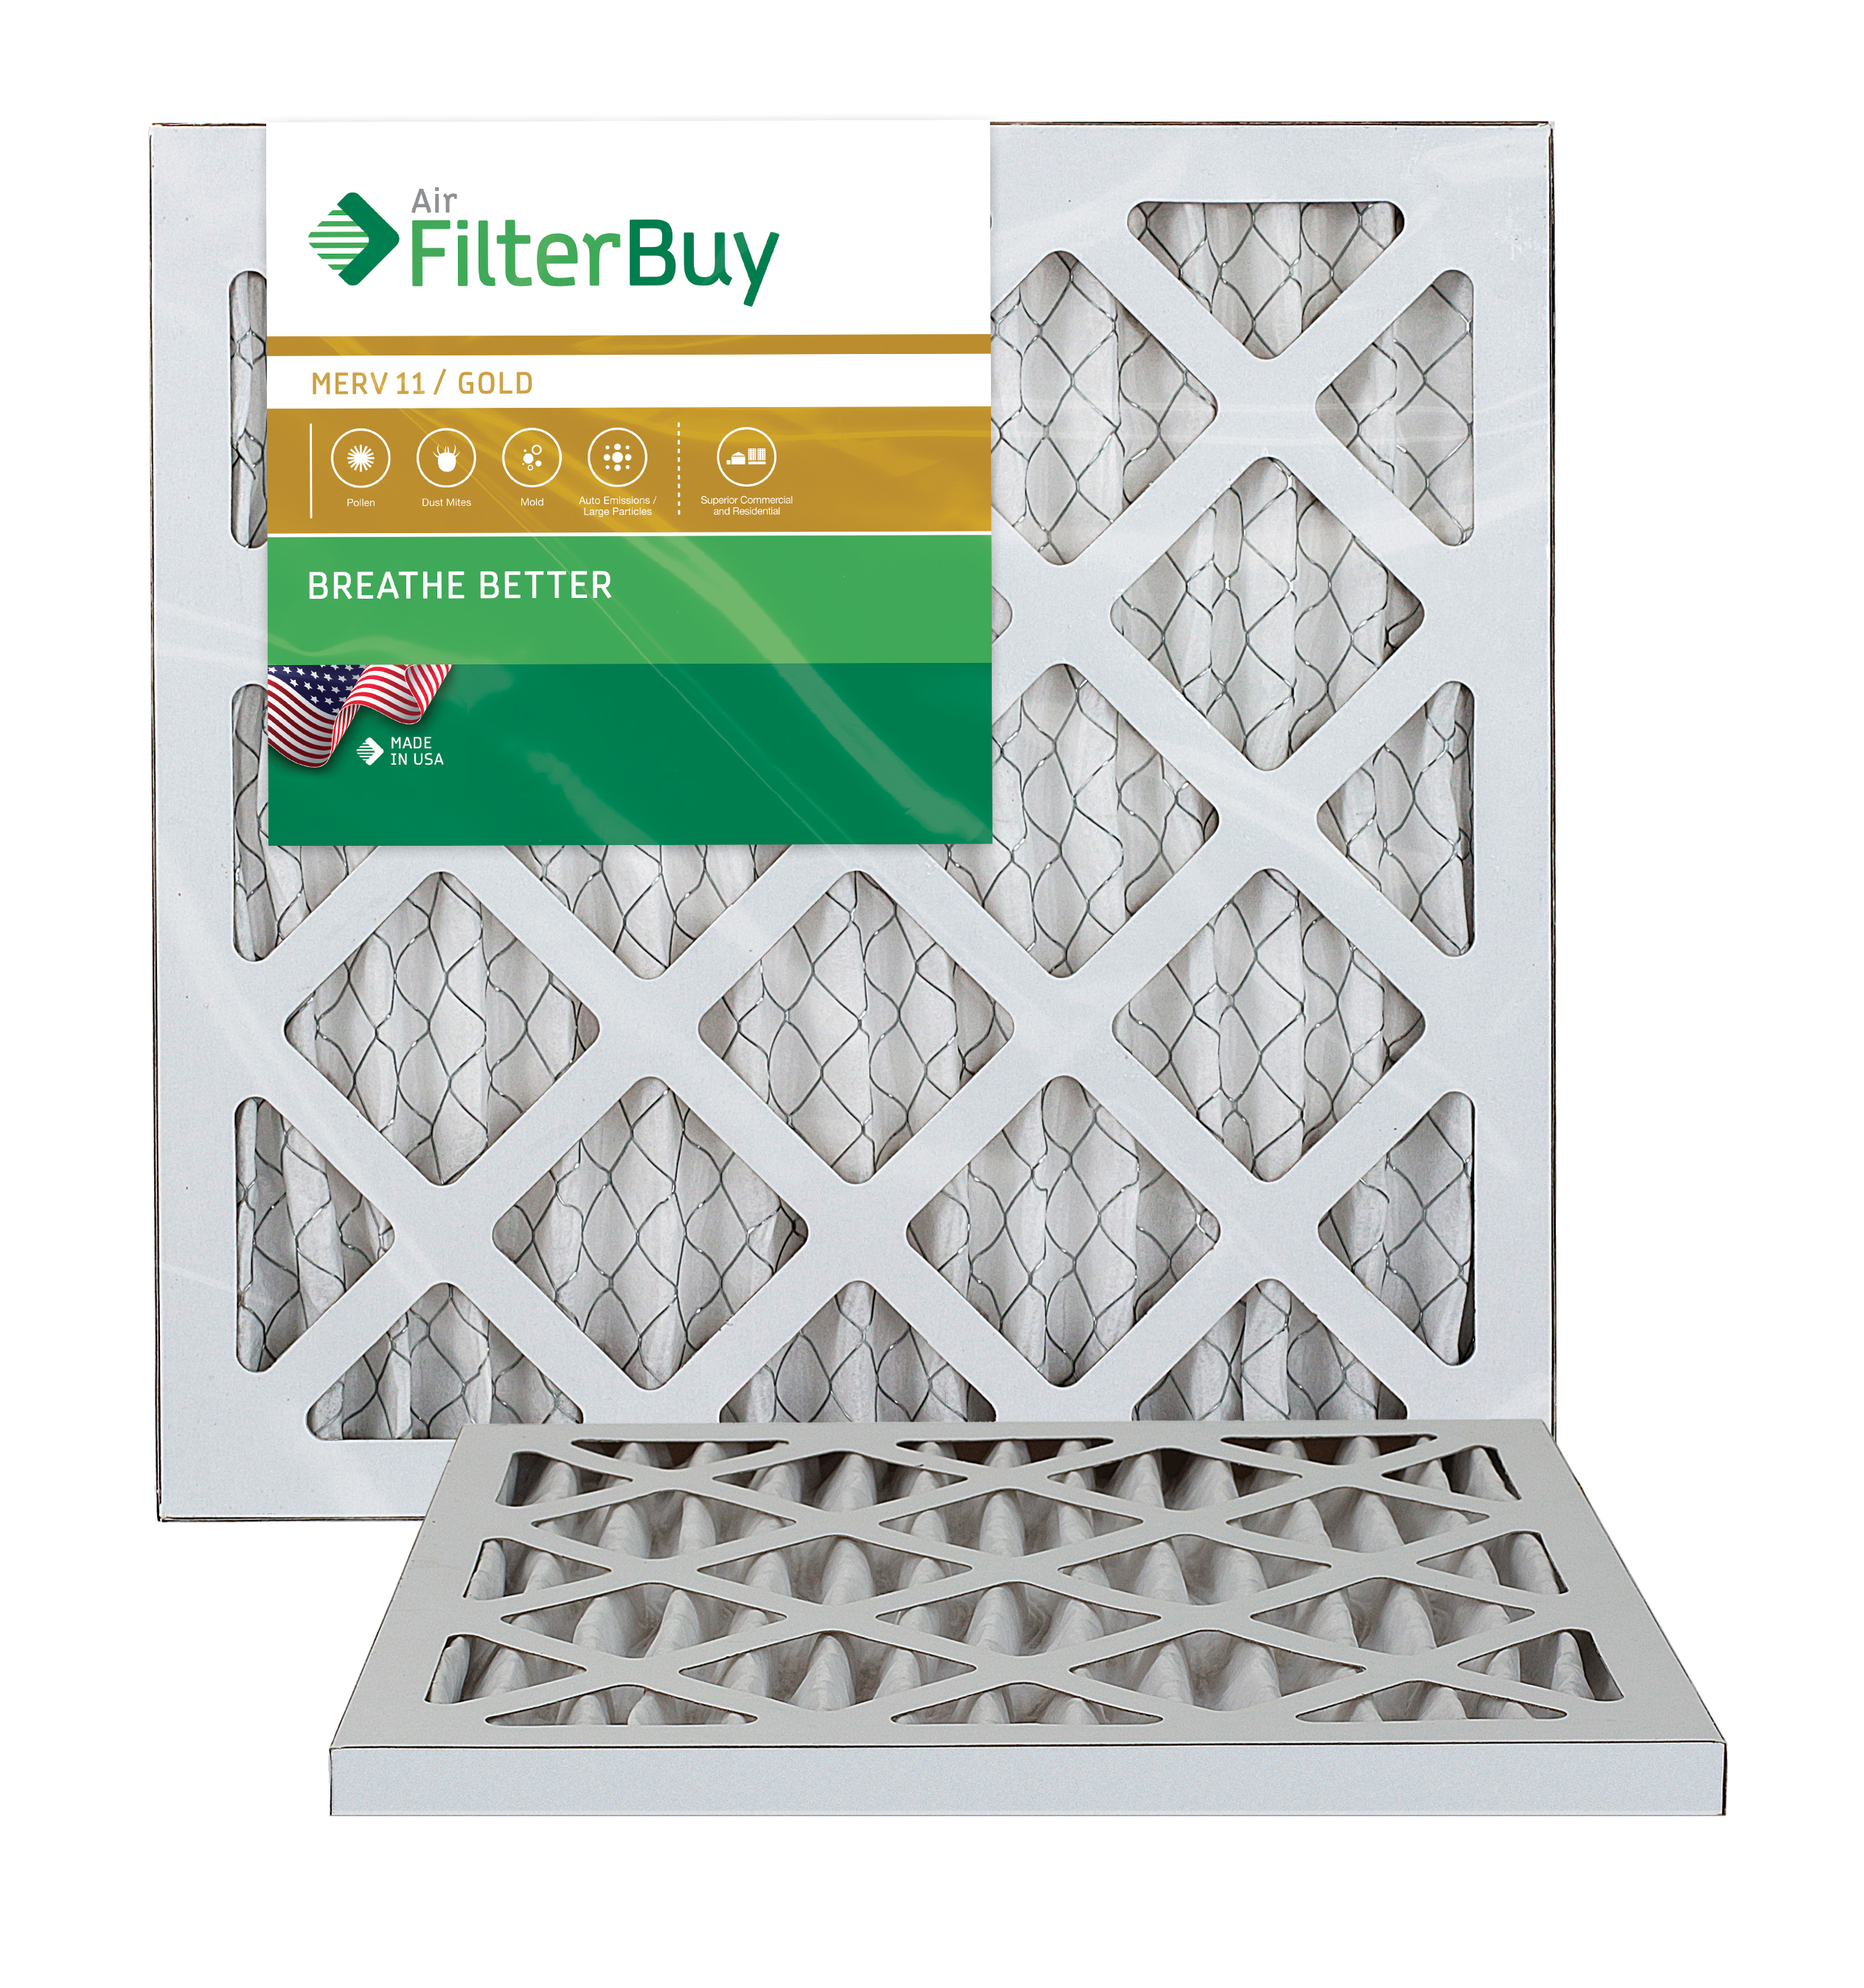 AFB Gold MERV 11 10x18x1 Pleated AC Furnace Air Filter. Pack of 2 Filters. 100% produced in the USA.